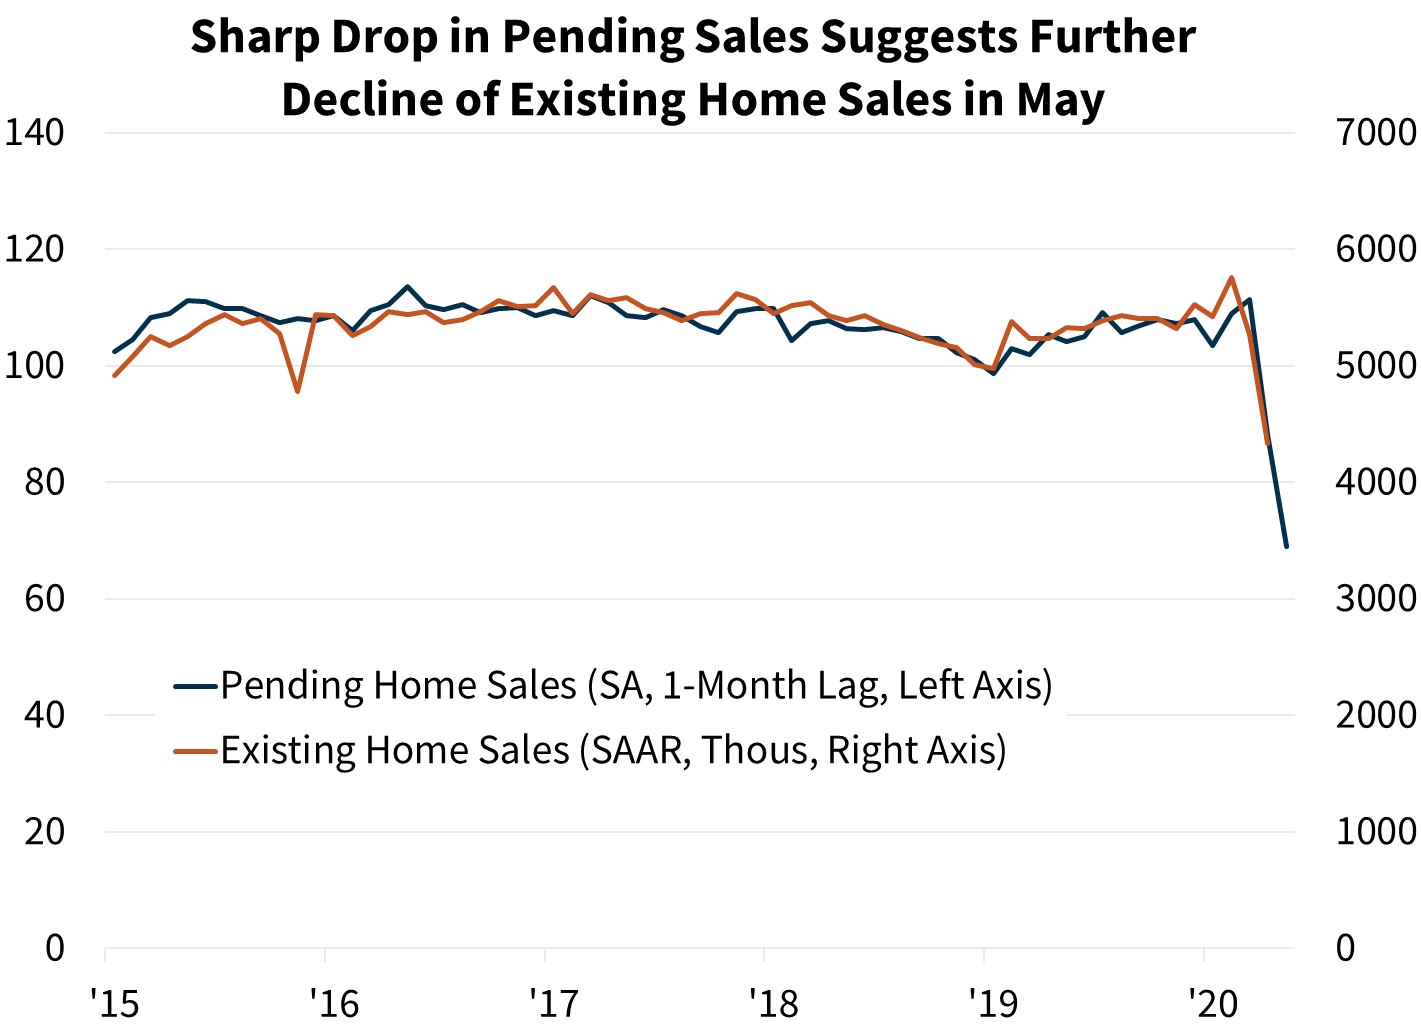 Sharp Drop in Pending Sales Suggests Further Decline of Existing Home Sales in May